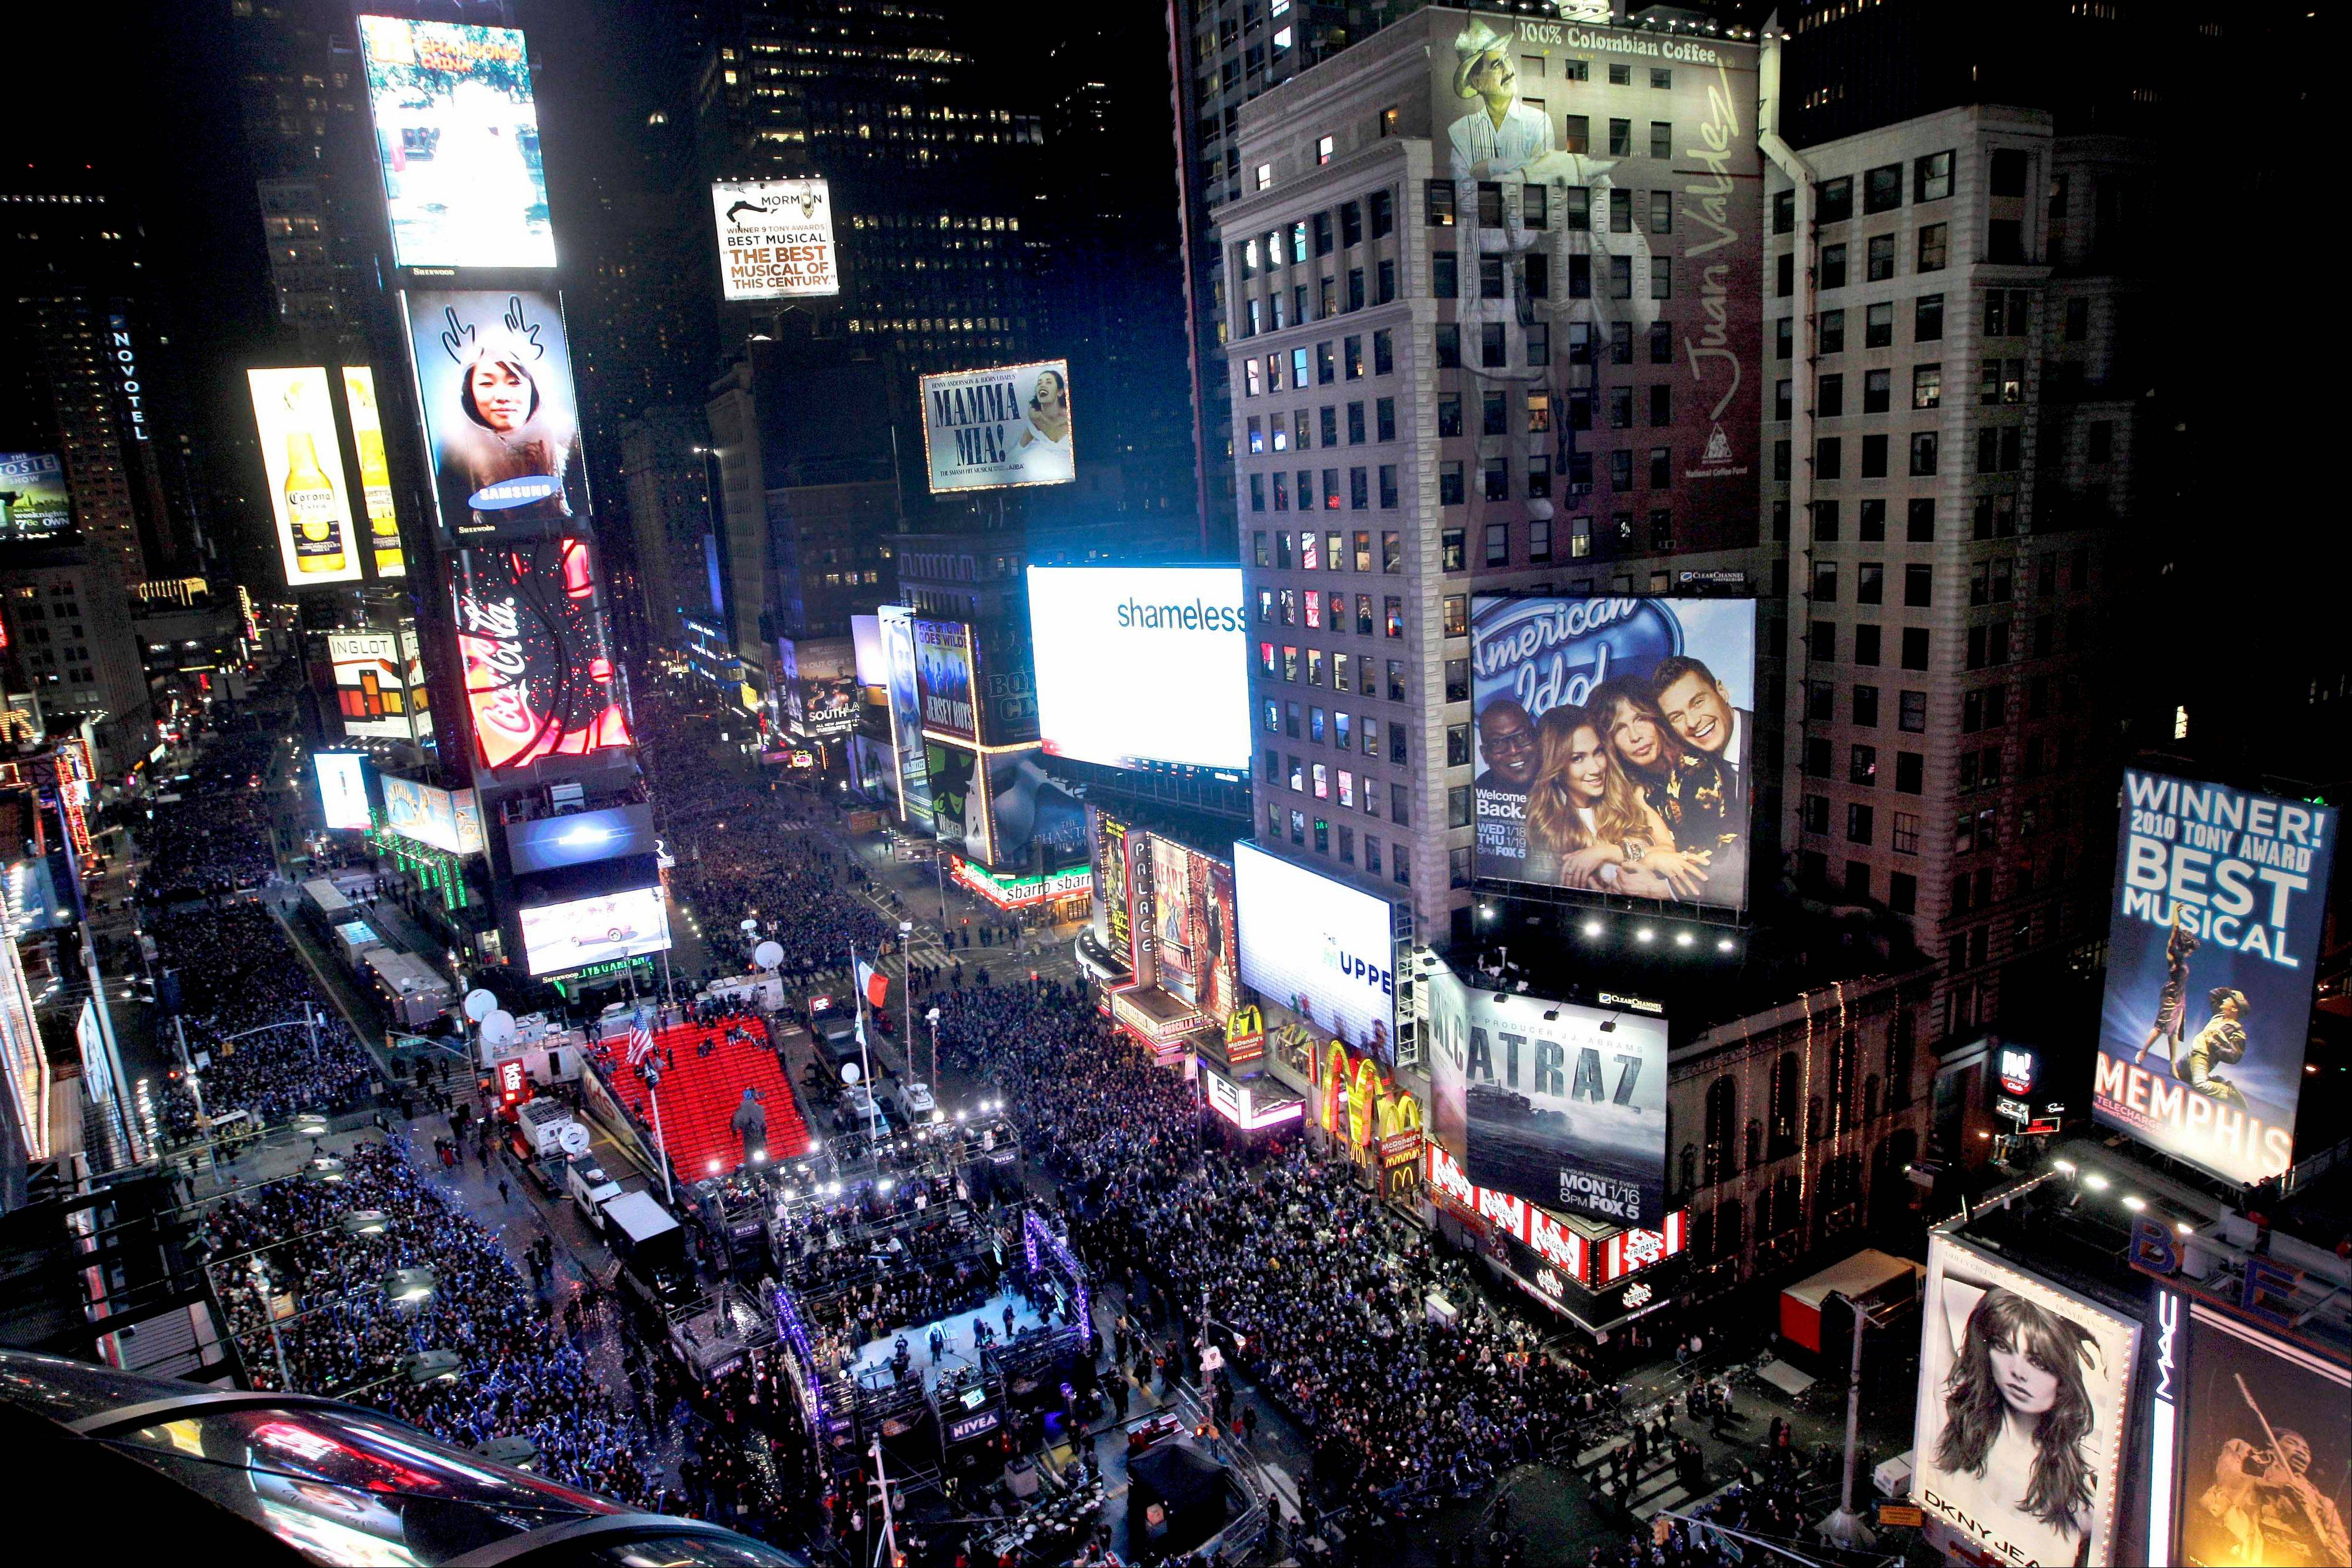 "The crowd packs New York's Times Square during the New Year's Eve celebration as seen from the Marriott Marquis hotel. It's no small task making sure the annual celebration remains safe, but the New York City police use an array of security measures for the event that turns the ""Crossroads of the World"" into a massive street party in the heart of Manhattan."